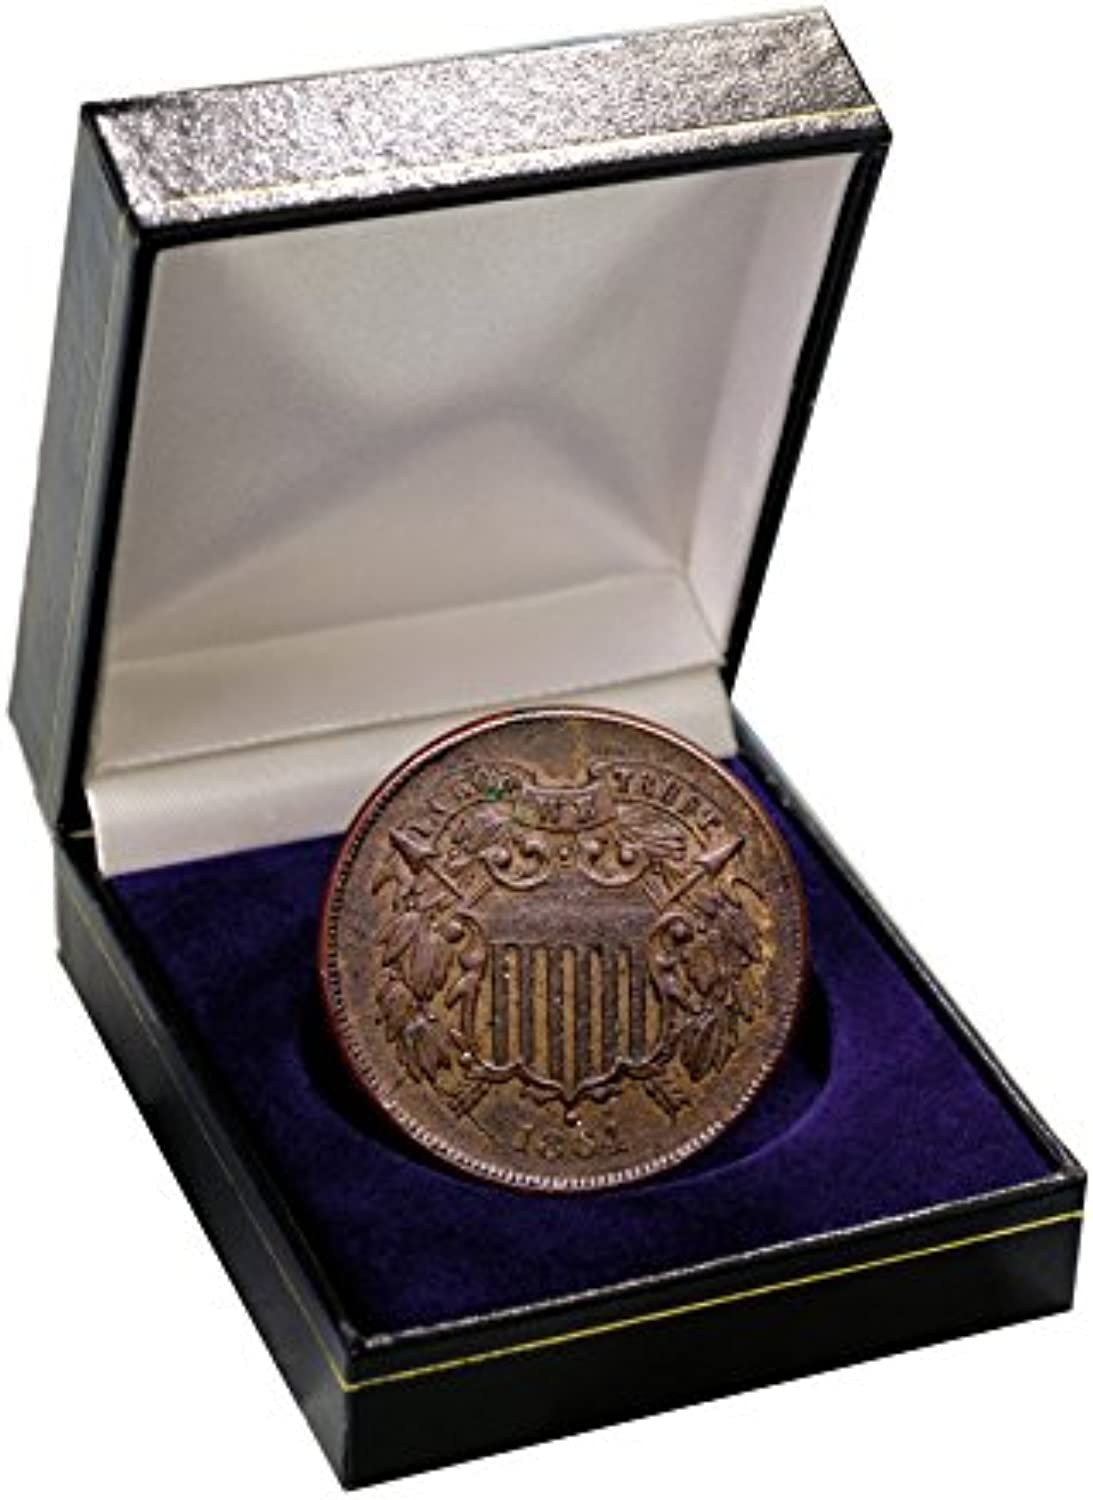 American Coin Treasures First Year of Issue 2 Cent Piece 1864 by American Coin Treasures